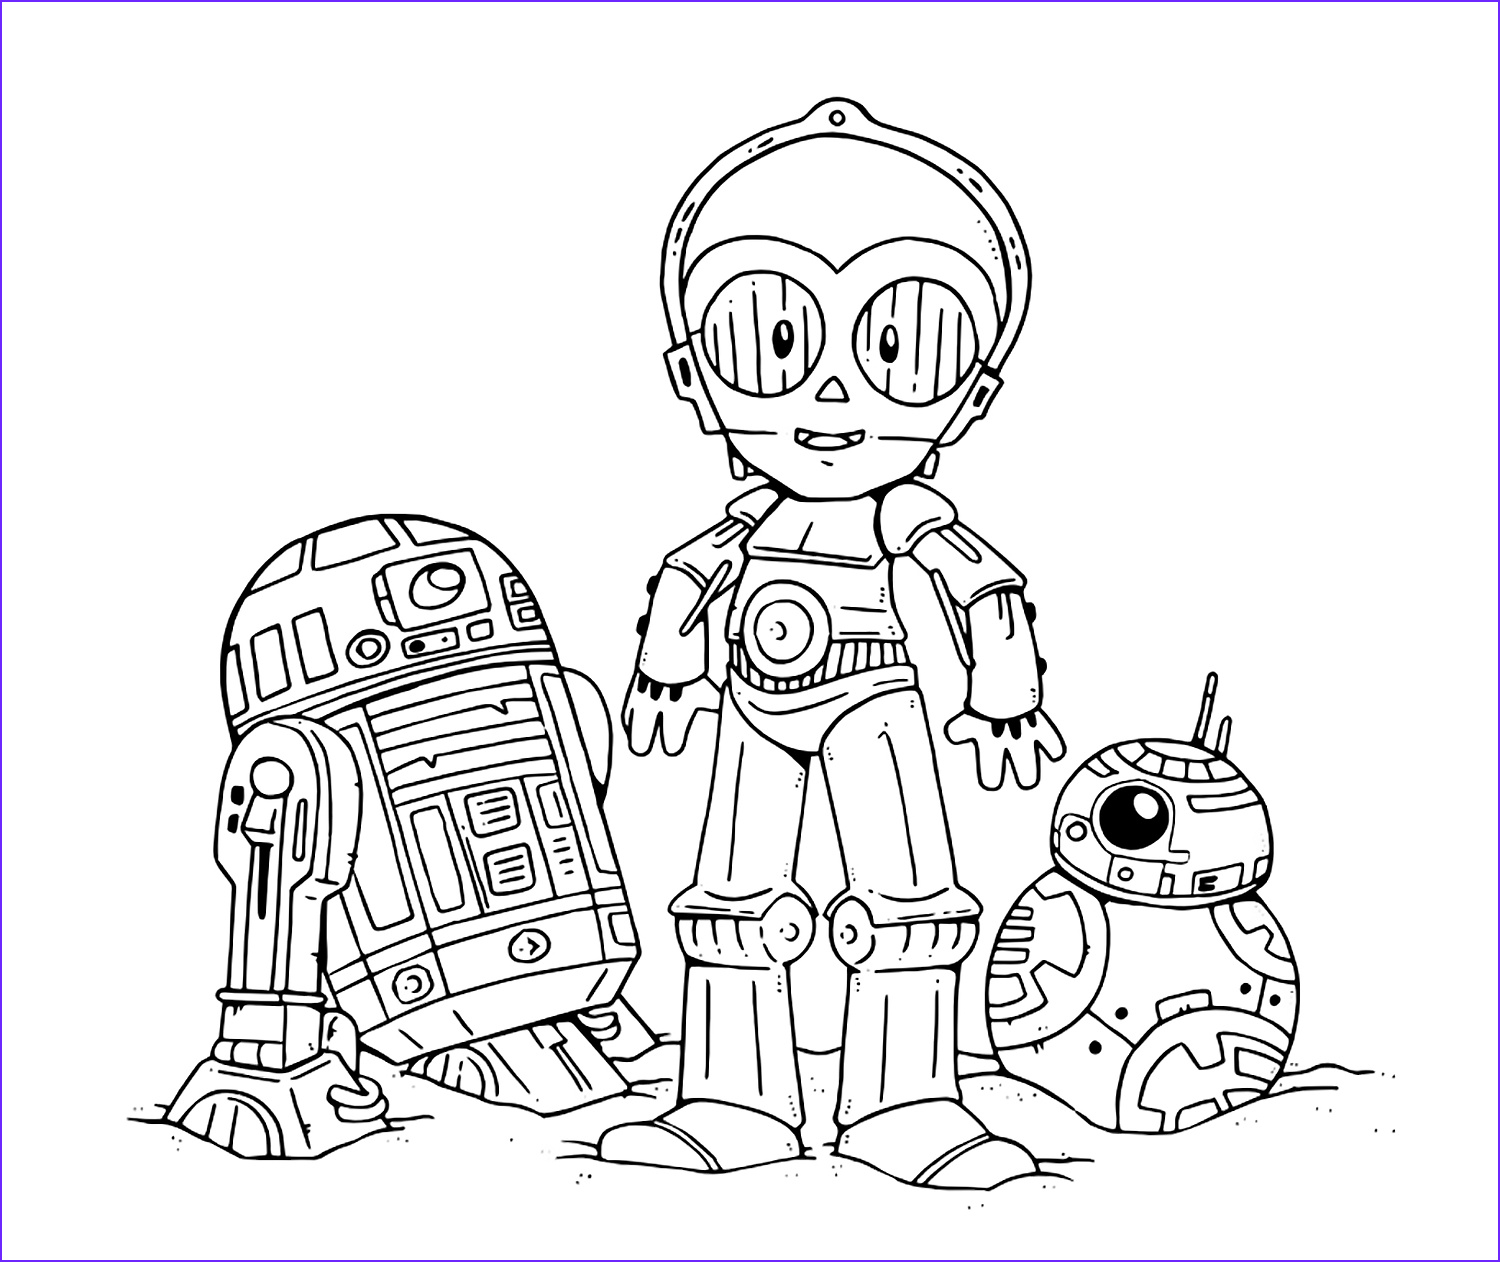 Star Wars Coloring Pages Luxury Collection Cute Coloring Pages Best Coloring Pages for Kids